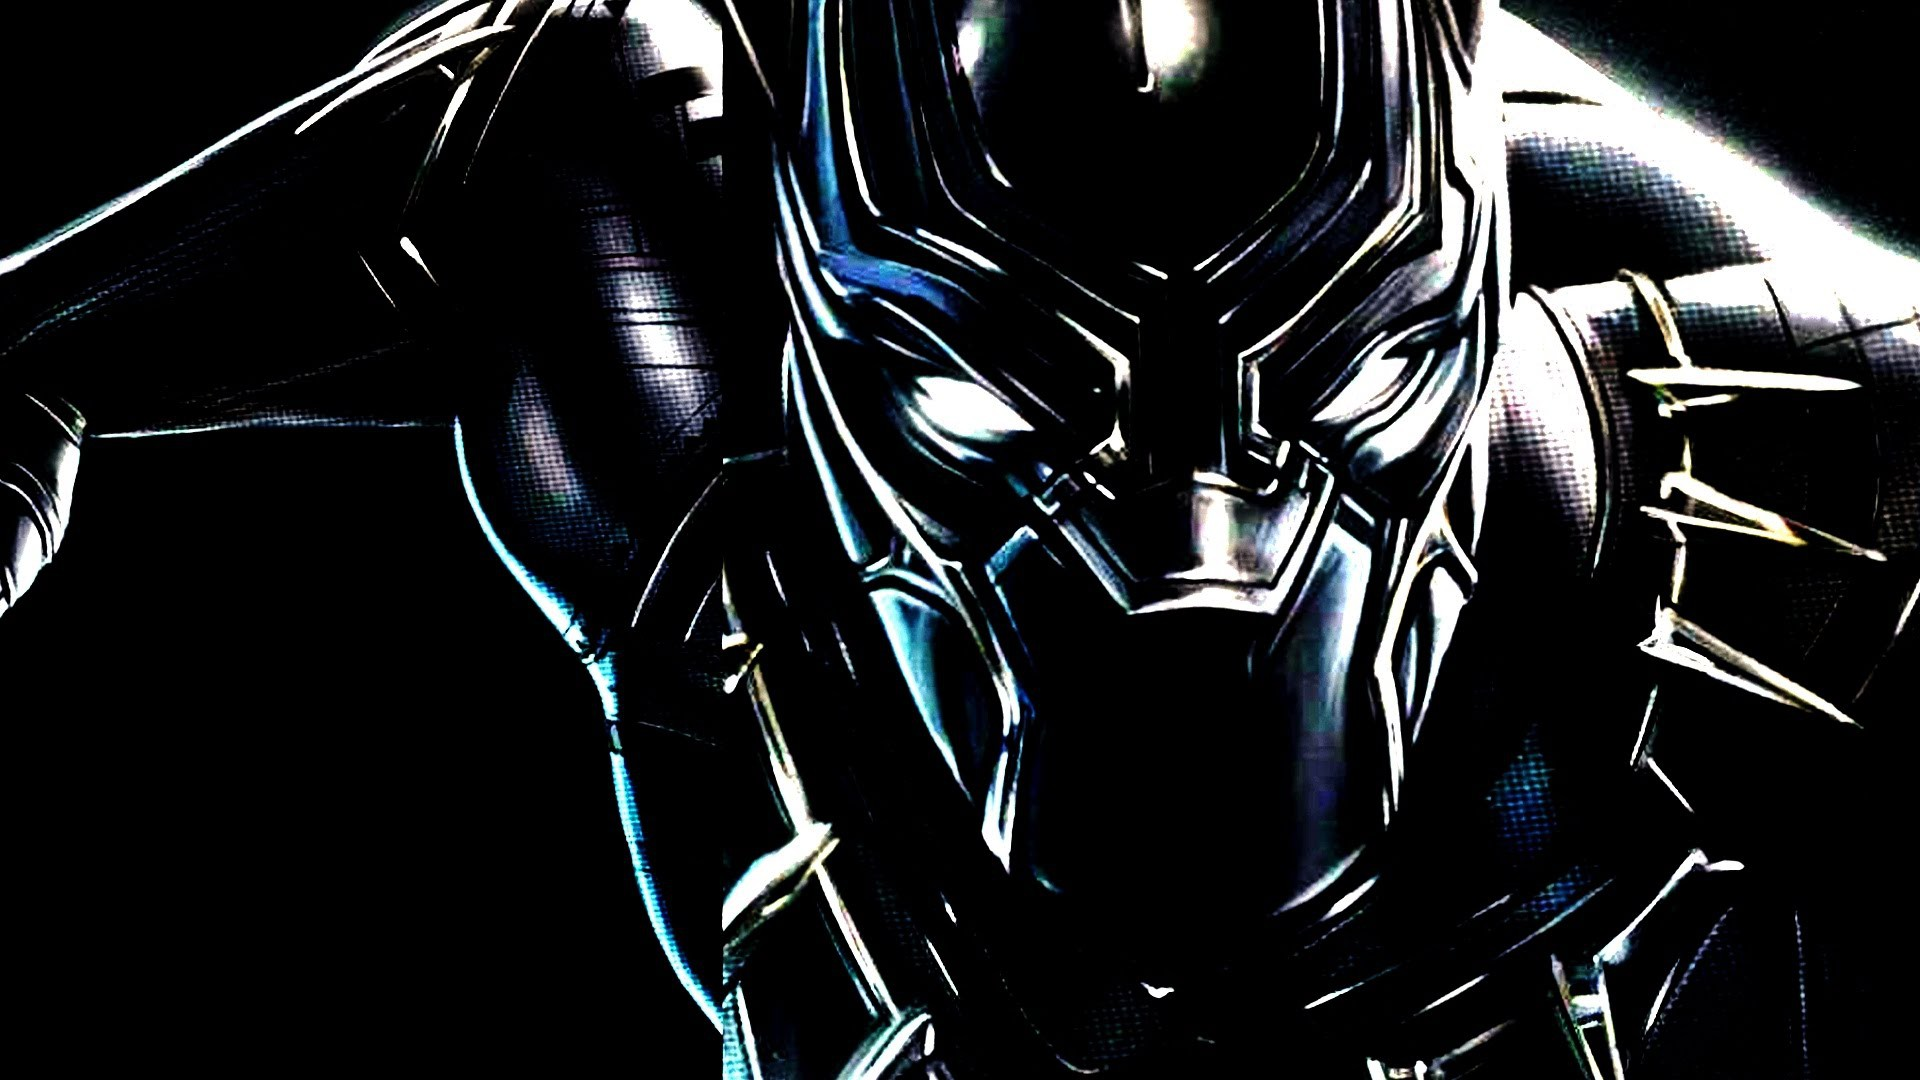 Free Download Marvel Black Panther Wallpapers Mobile 1920x1080 For Your Desktop Mobile Tablet Explore 24 Black Panther Marvel Mobile Wallpapers Black Panther Marvel Mobile Wallpapers Black Panther Marvel Wallpapers